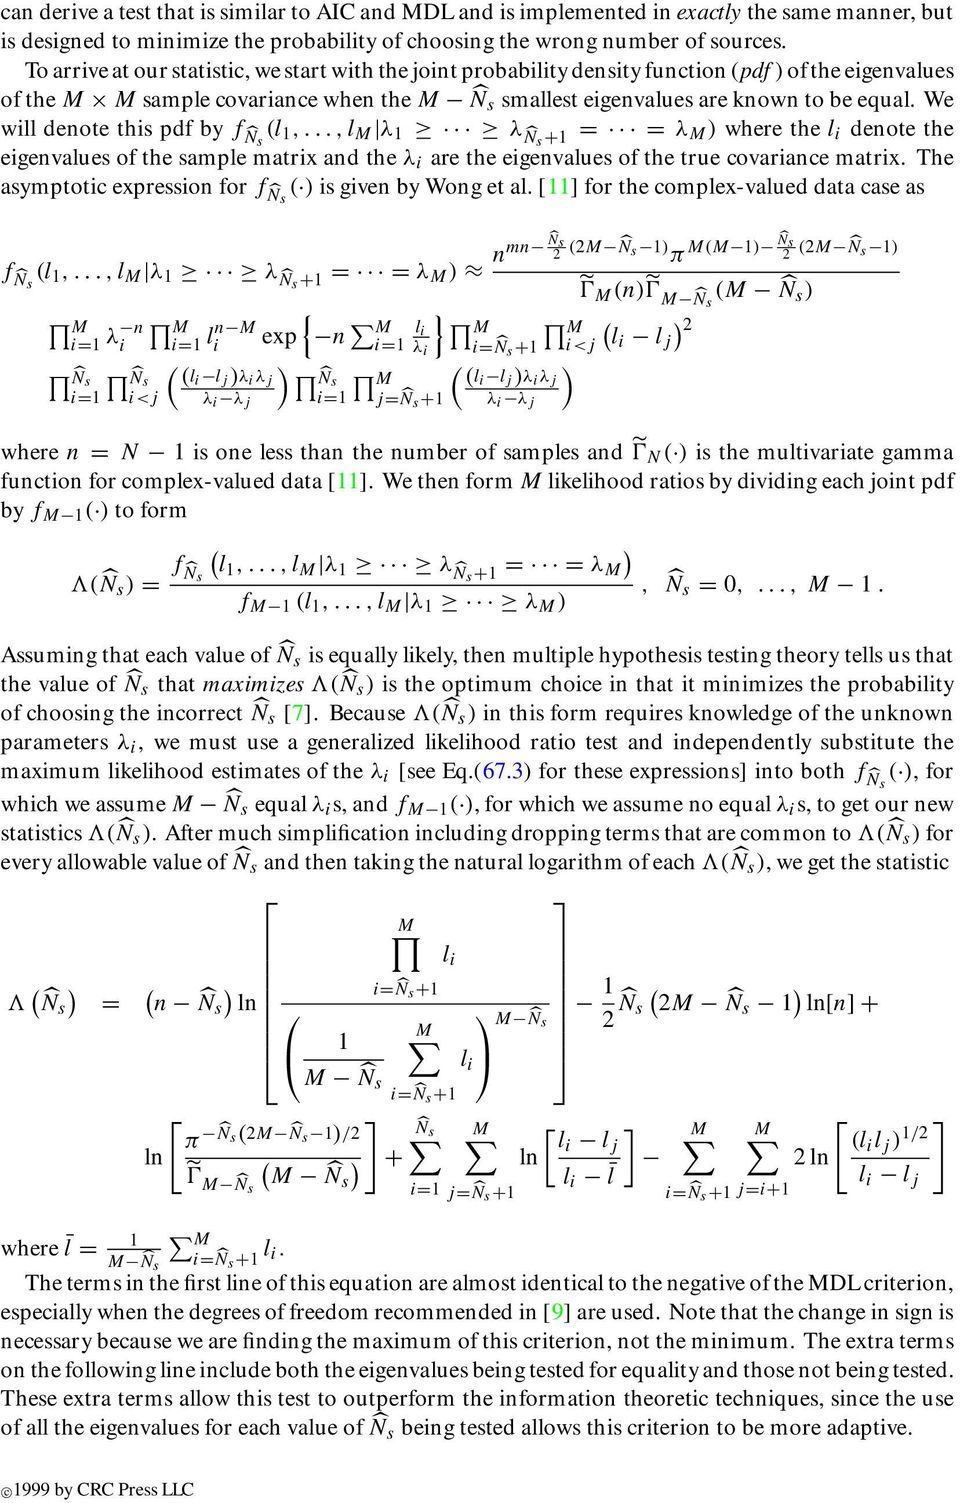 We will denote this pdf by f N s l,...,l M λ λ N s + = = λ M) where the denote the eigenvalues of the sample matrix and the λ i are the eigenvalues of the true covariance matrix.